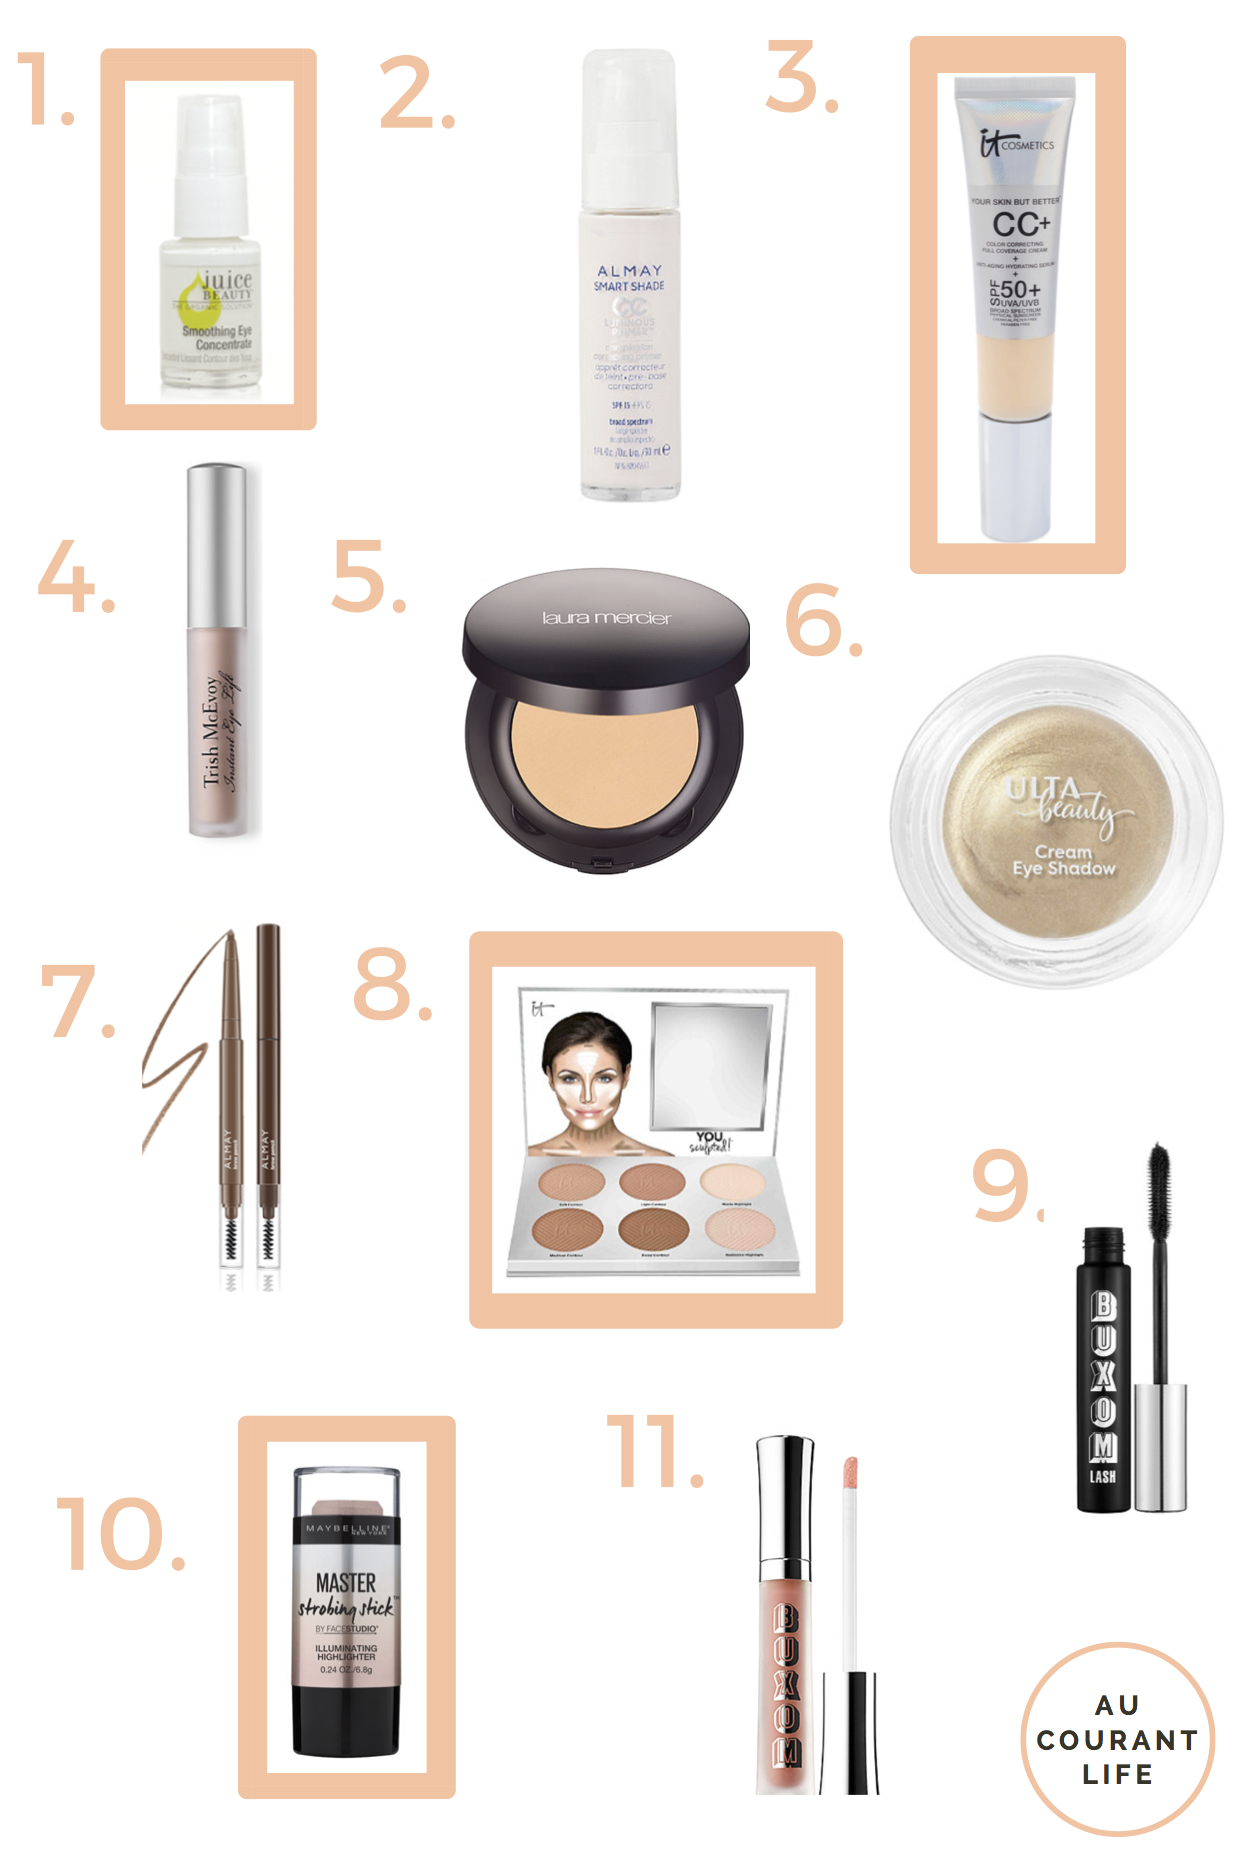 My Everyday Makeup Routine & Products — Au Courant Life